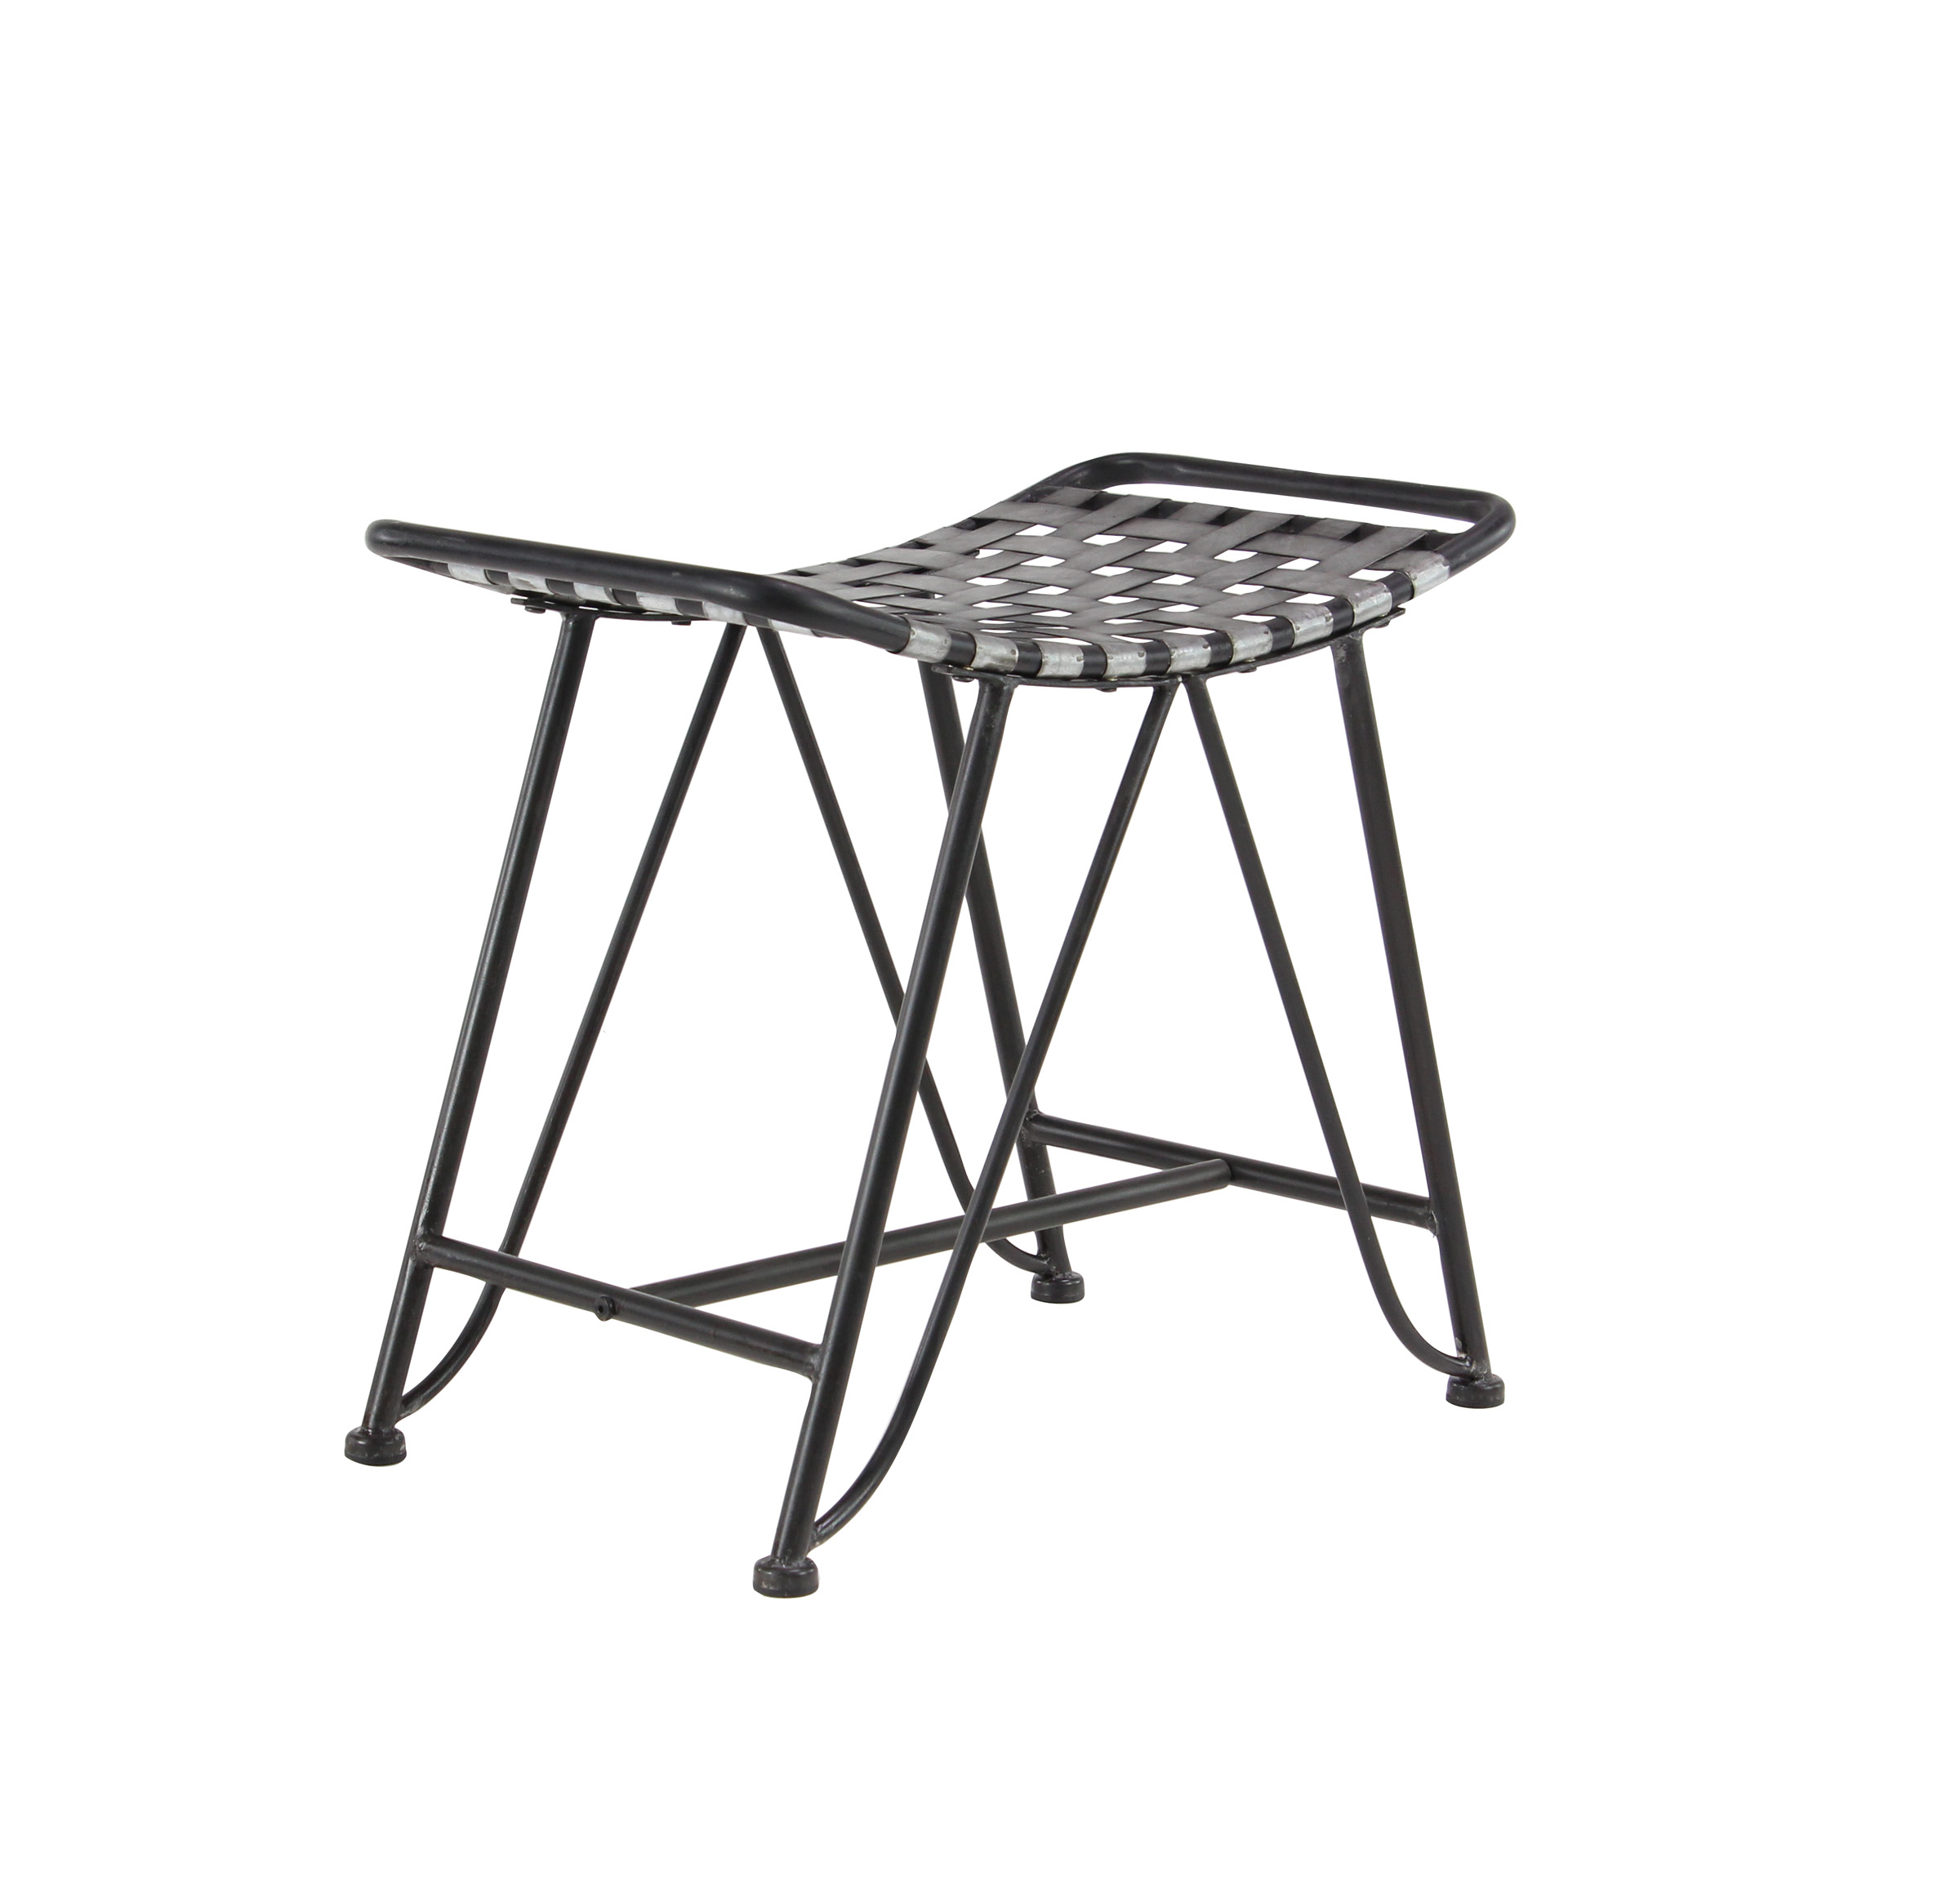 Decmode Industrial 21 X 24 Inch Gray Iron Woven Stool